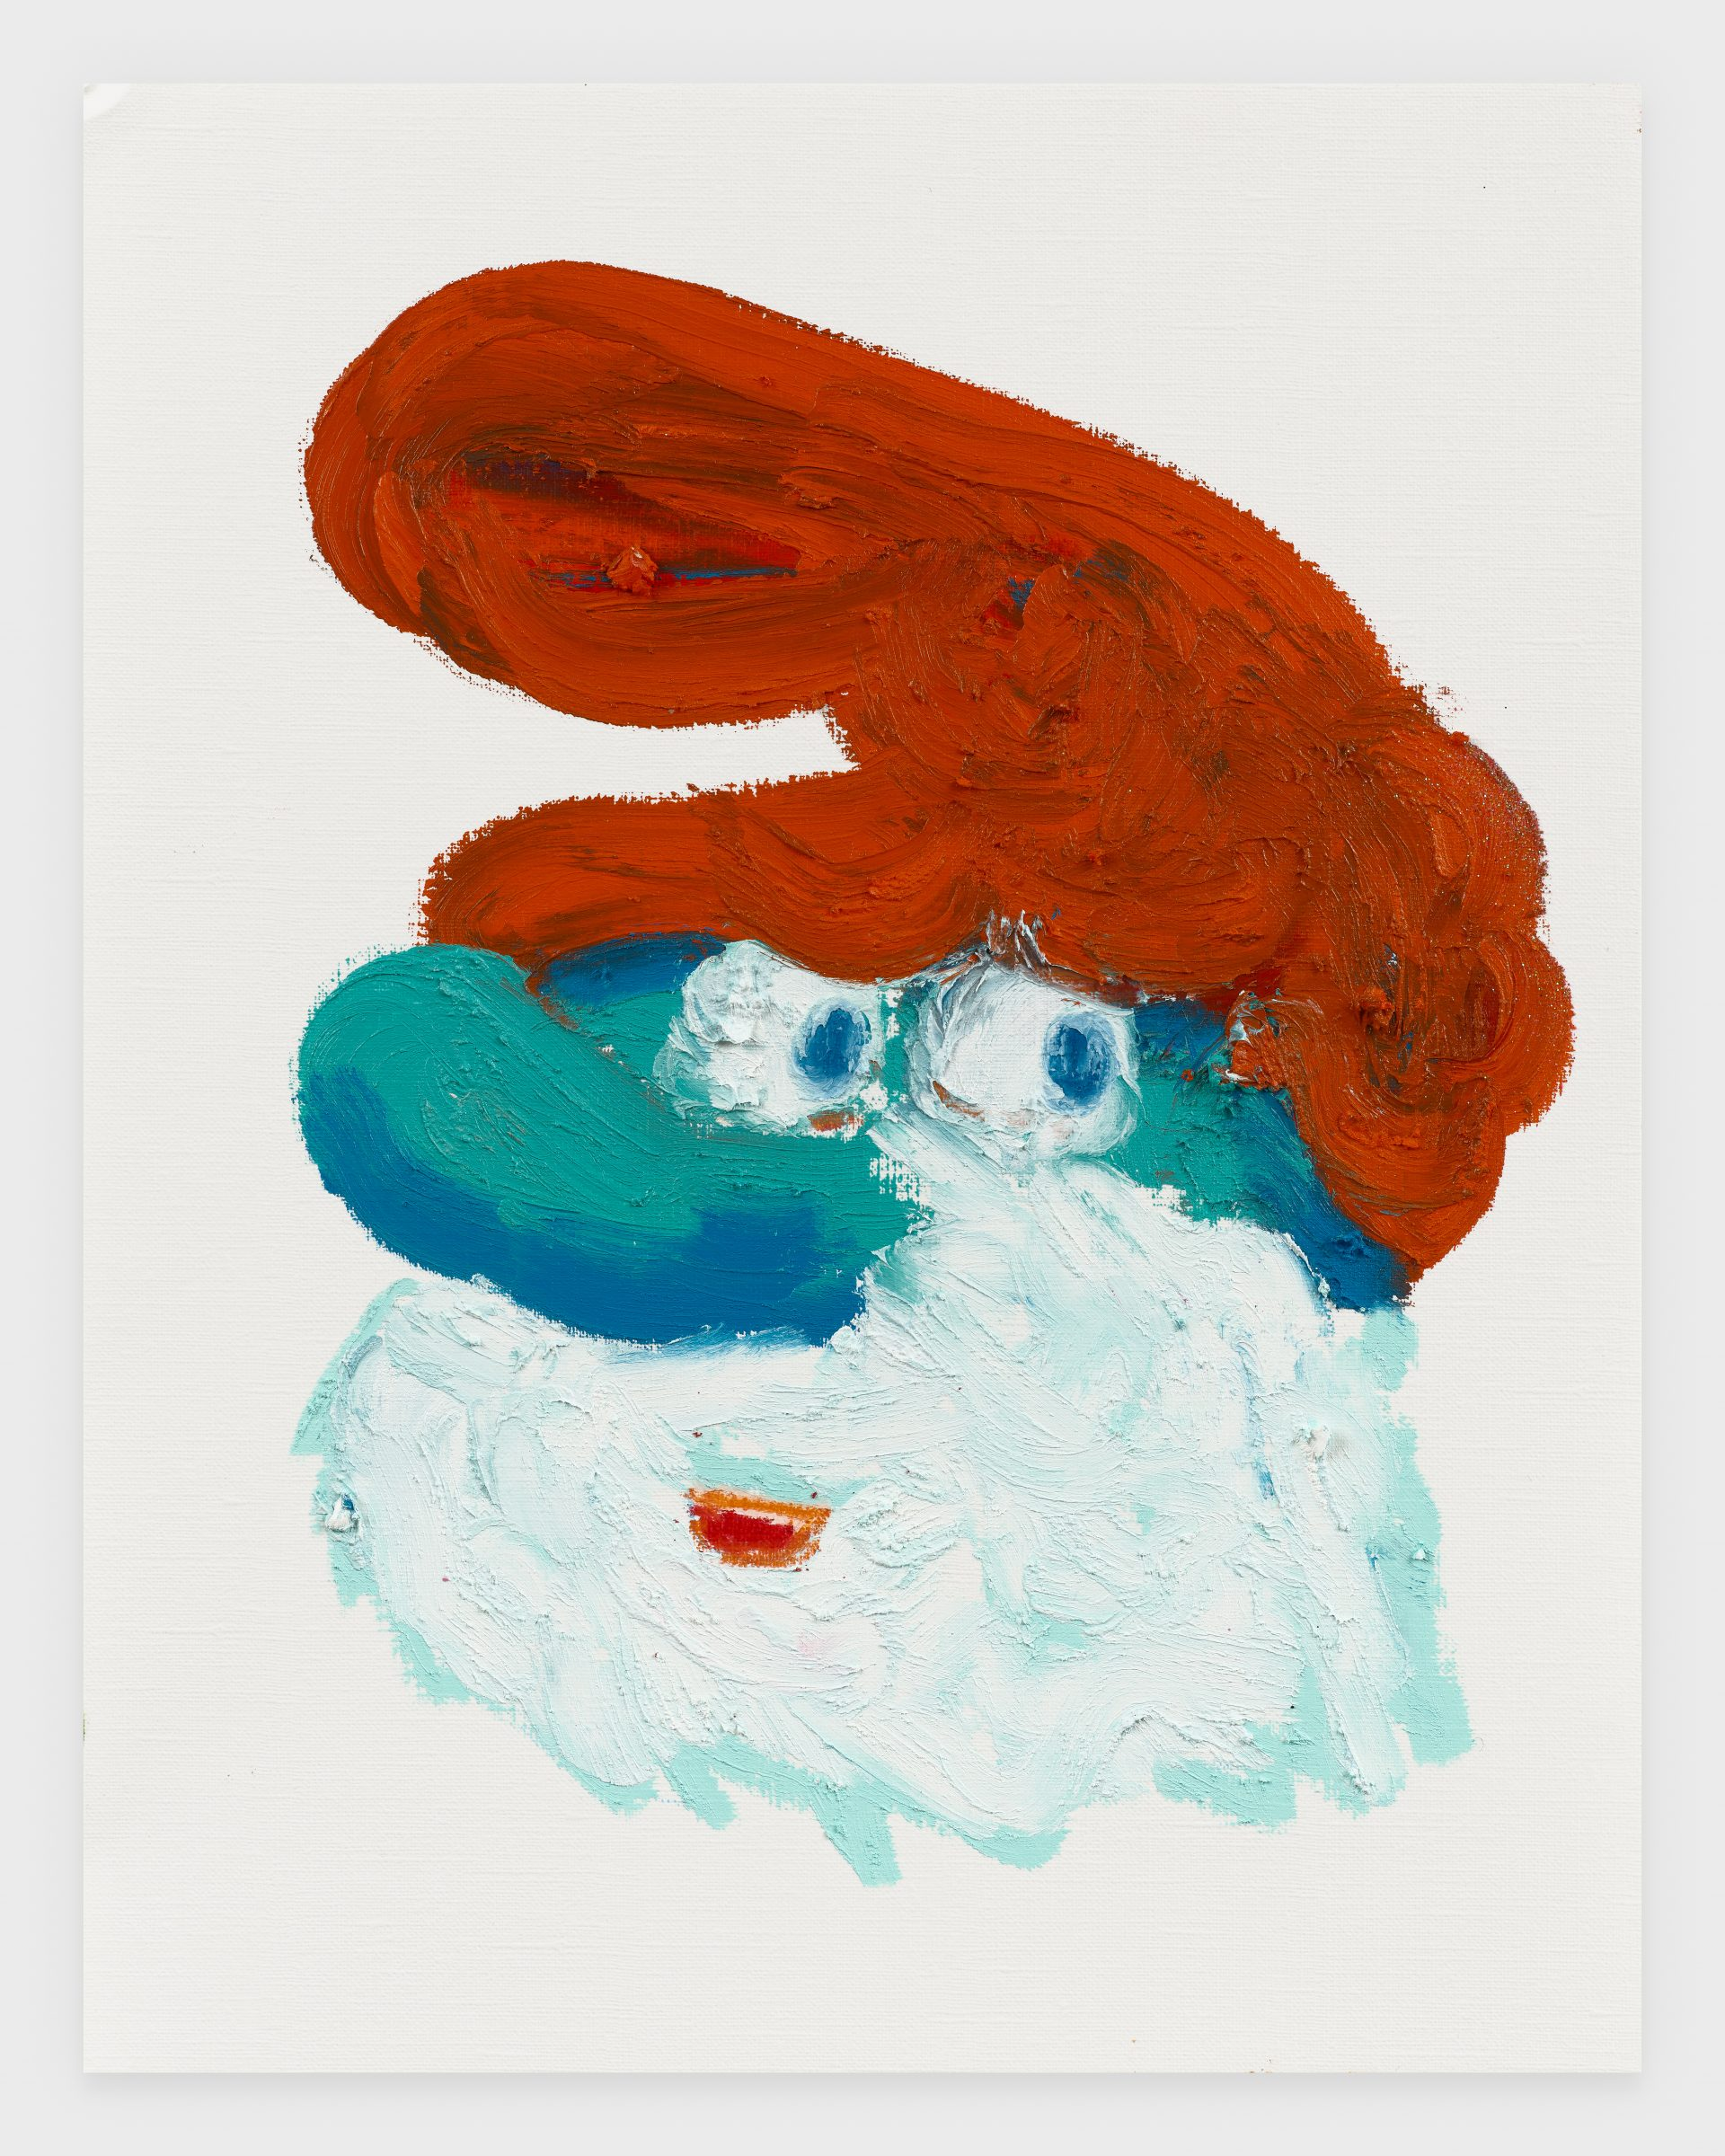 Papa Smurf, 2020, Oil stick on archival paper, 11 x 14 inches